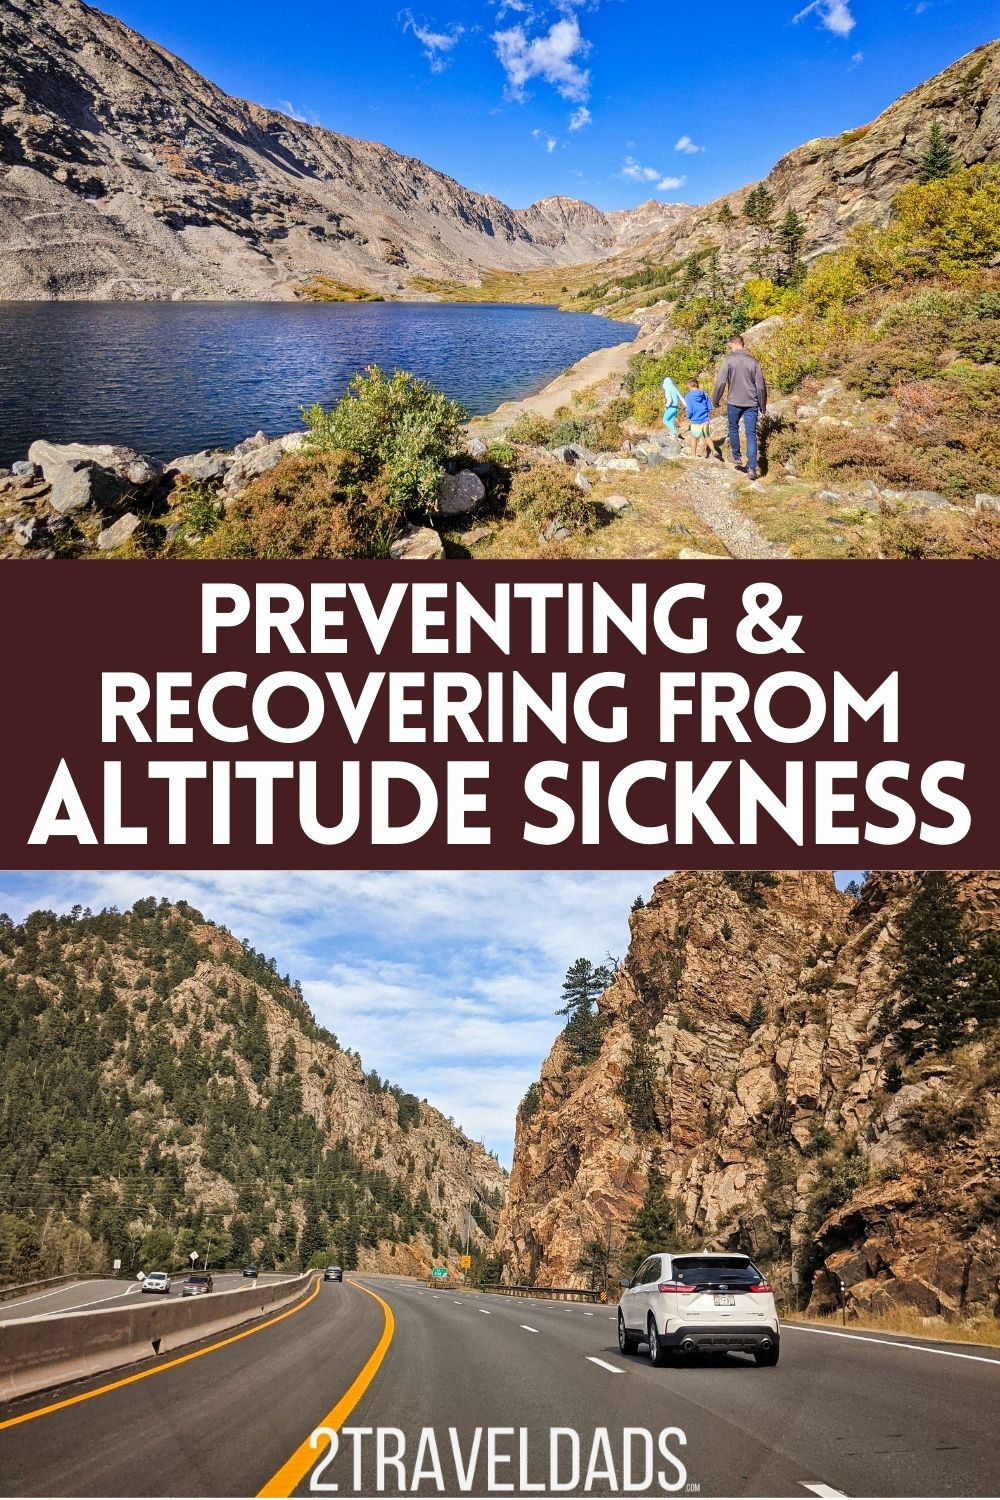 Traveling to higher elevations can cause altitude sickness after a short period. Here is how to prevent and recover from altitude sickness, also called acute mountain illness, and be able to enjoy traveling to gorgeous mountain destinations.